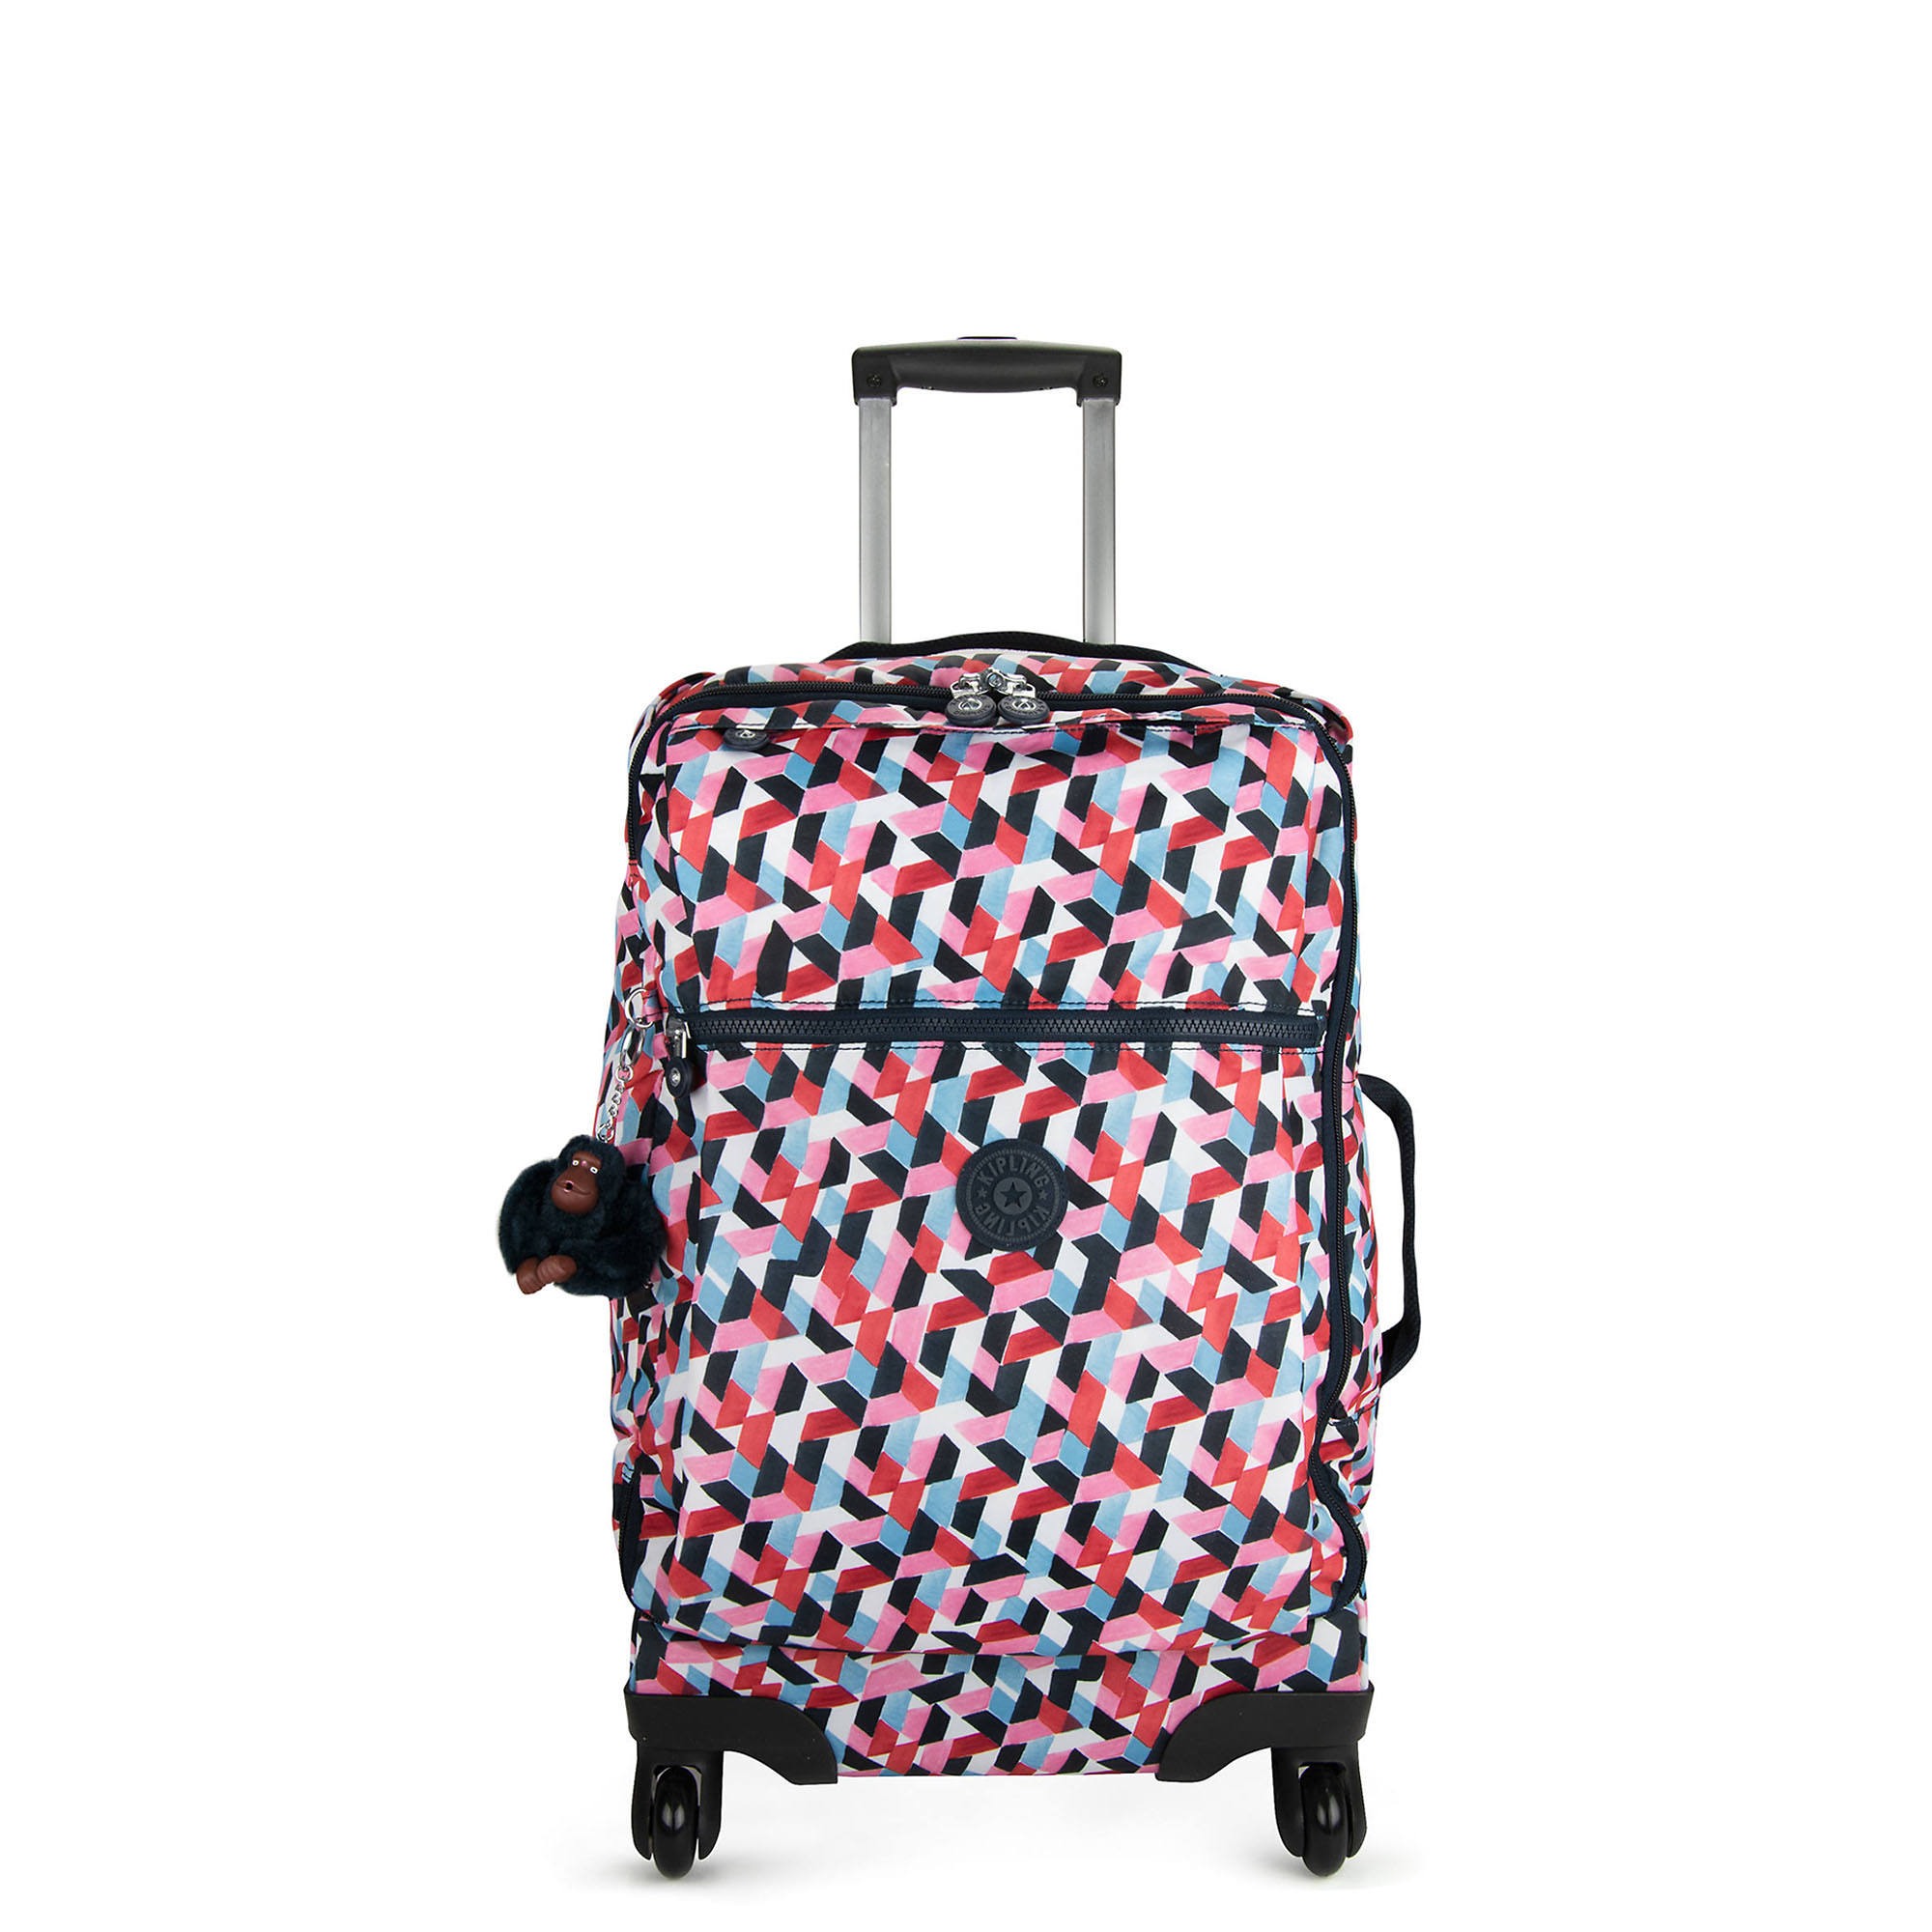 cb2eaaea16 Darcey Small Printed Carry-On Rolling Luggage